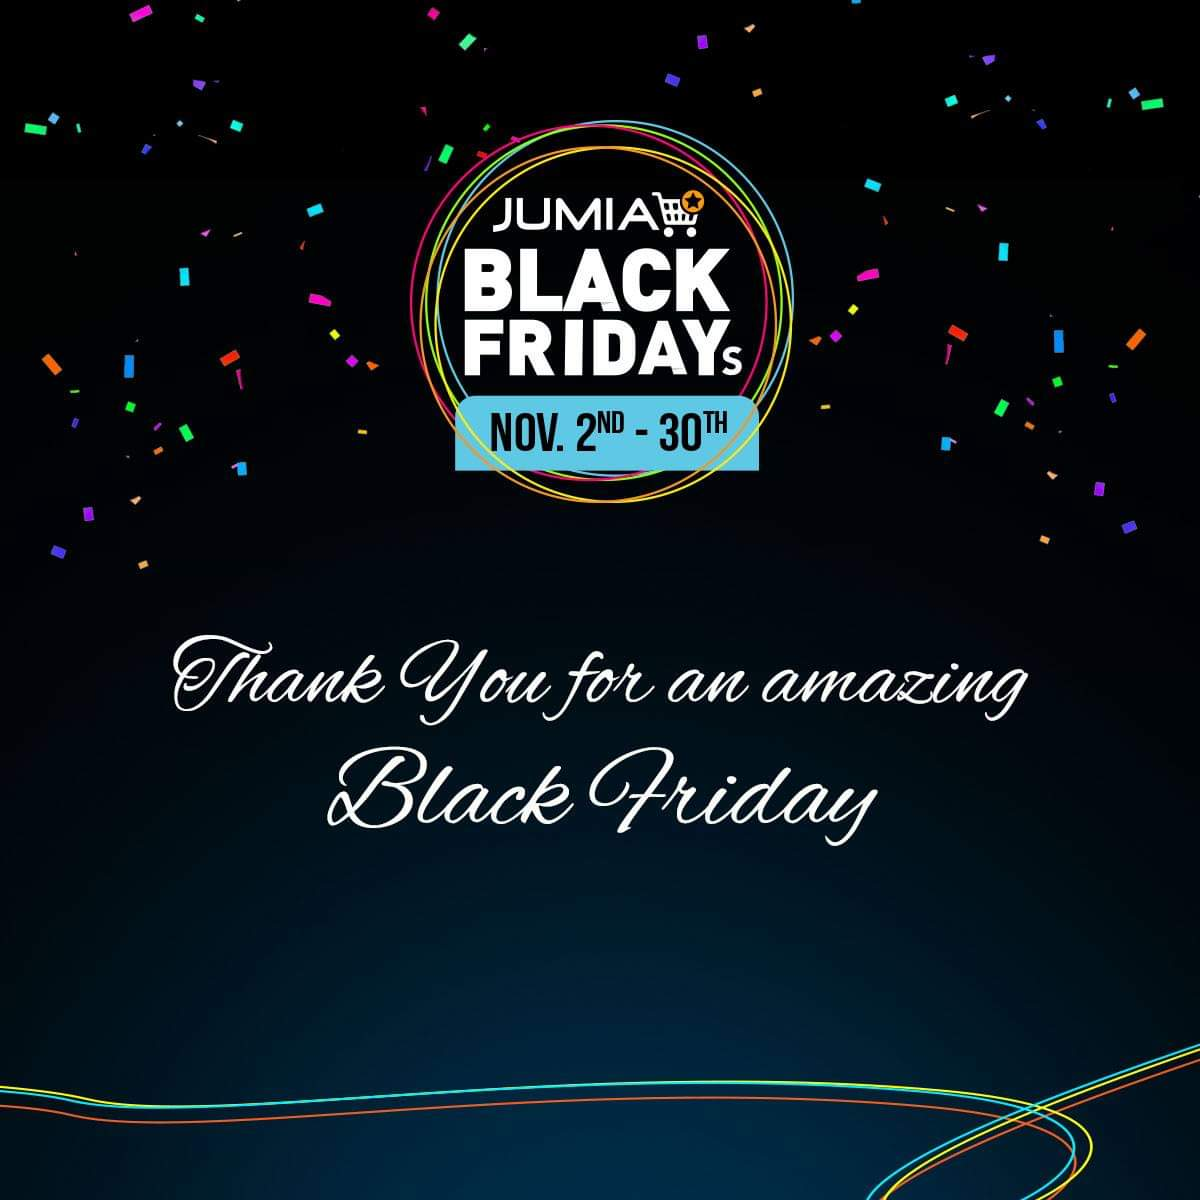 History of Jumia Black Friday